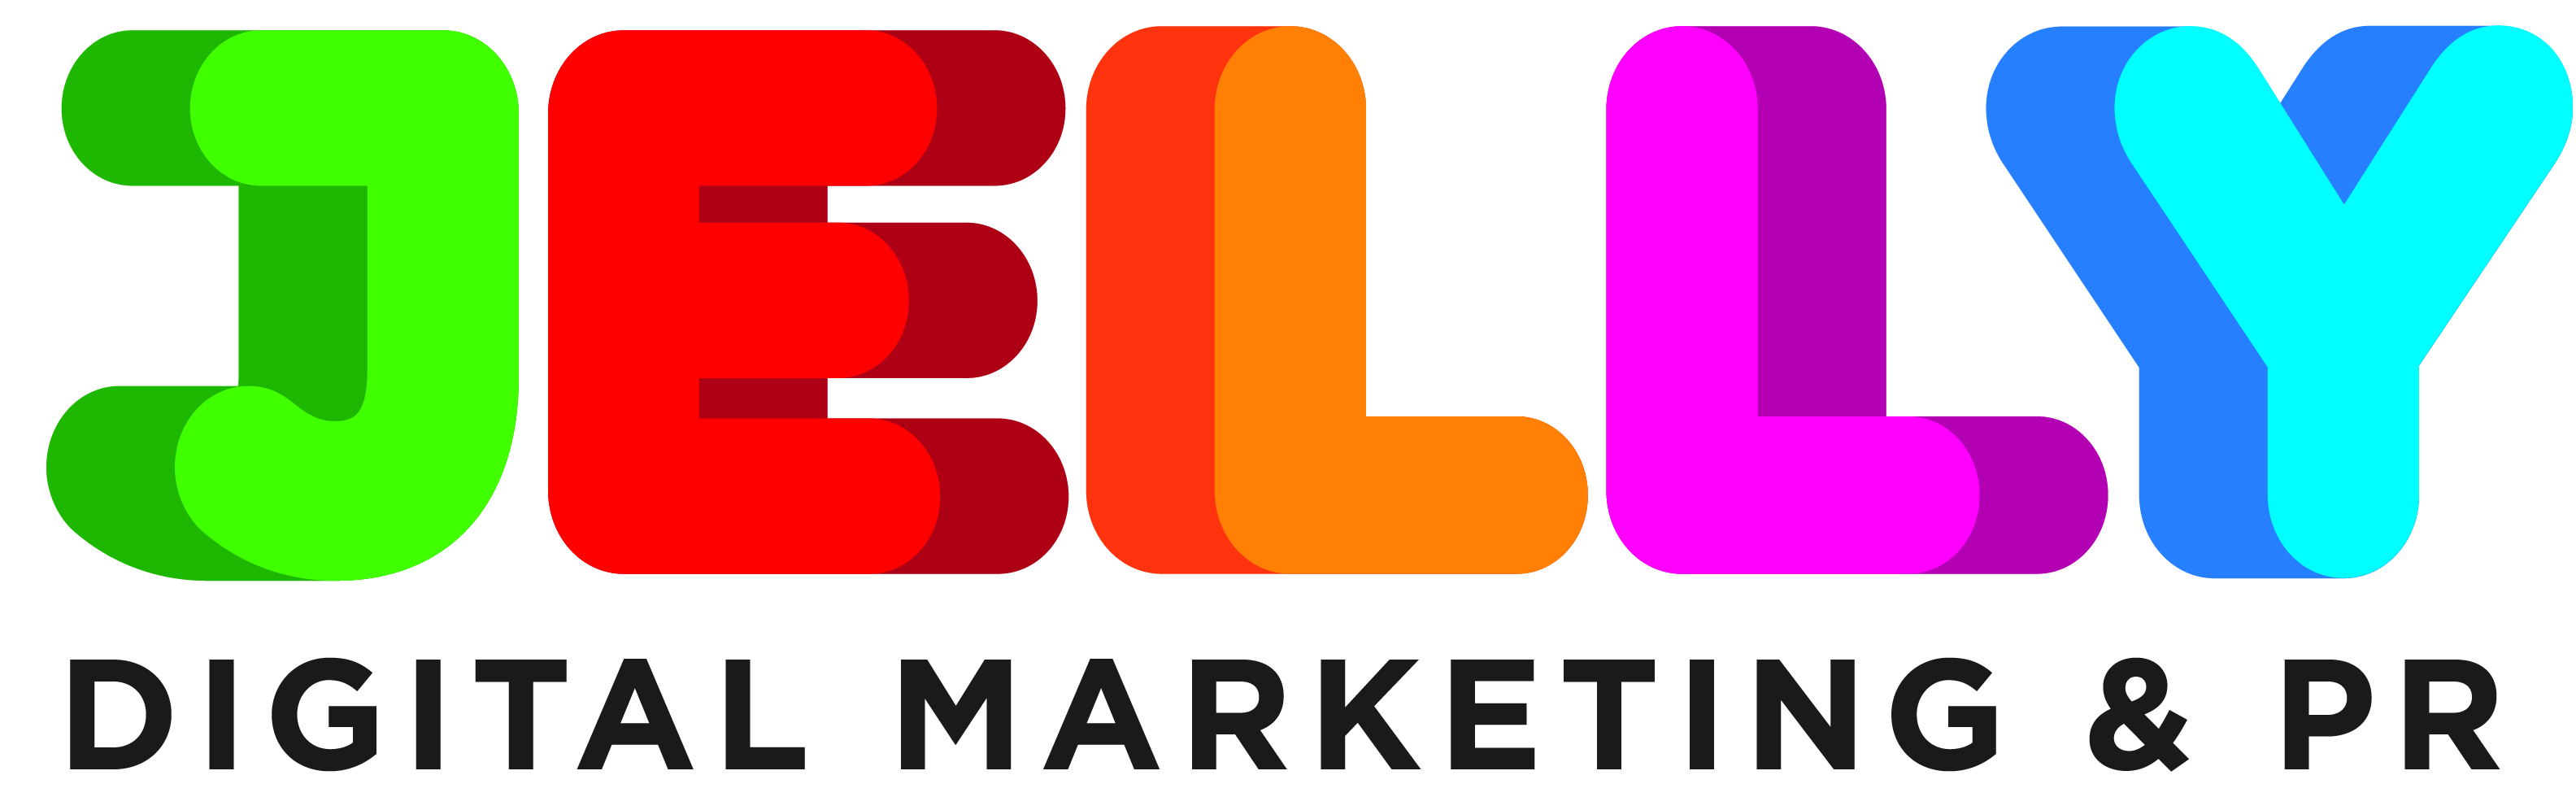 Jelly Marketing & PR Agency Logo